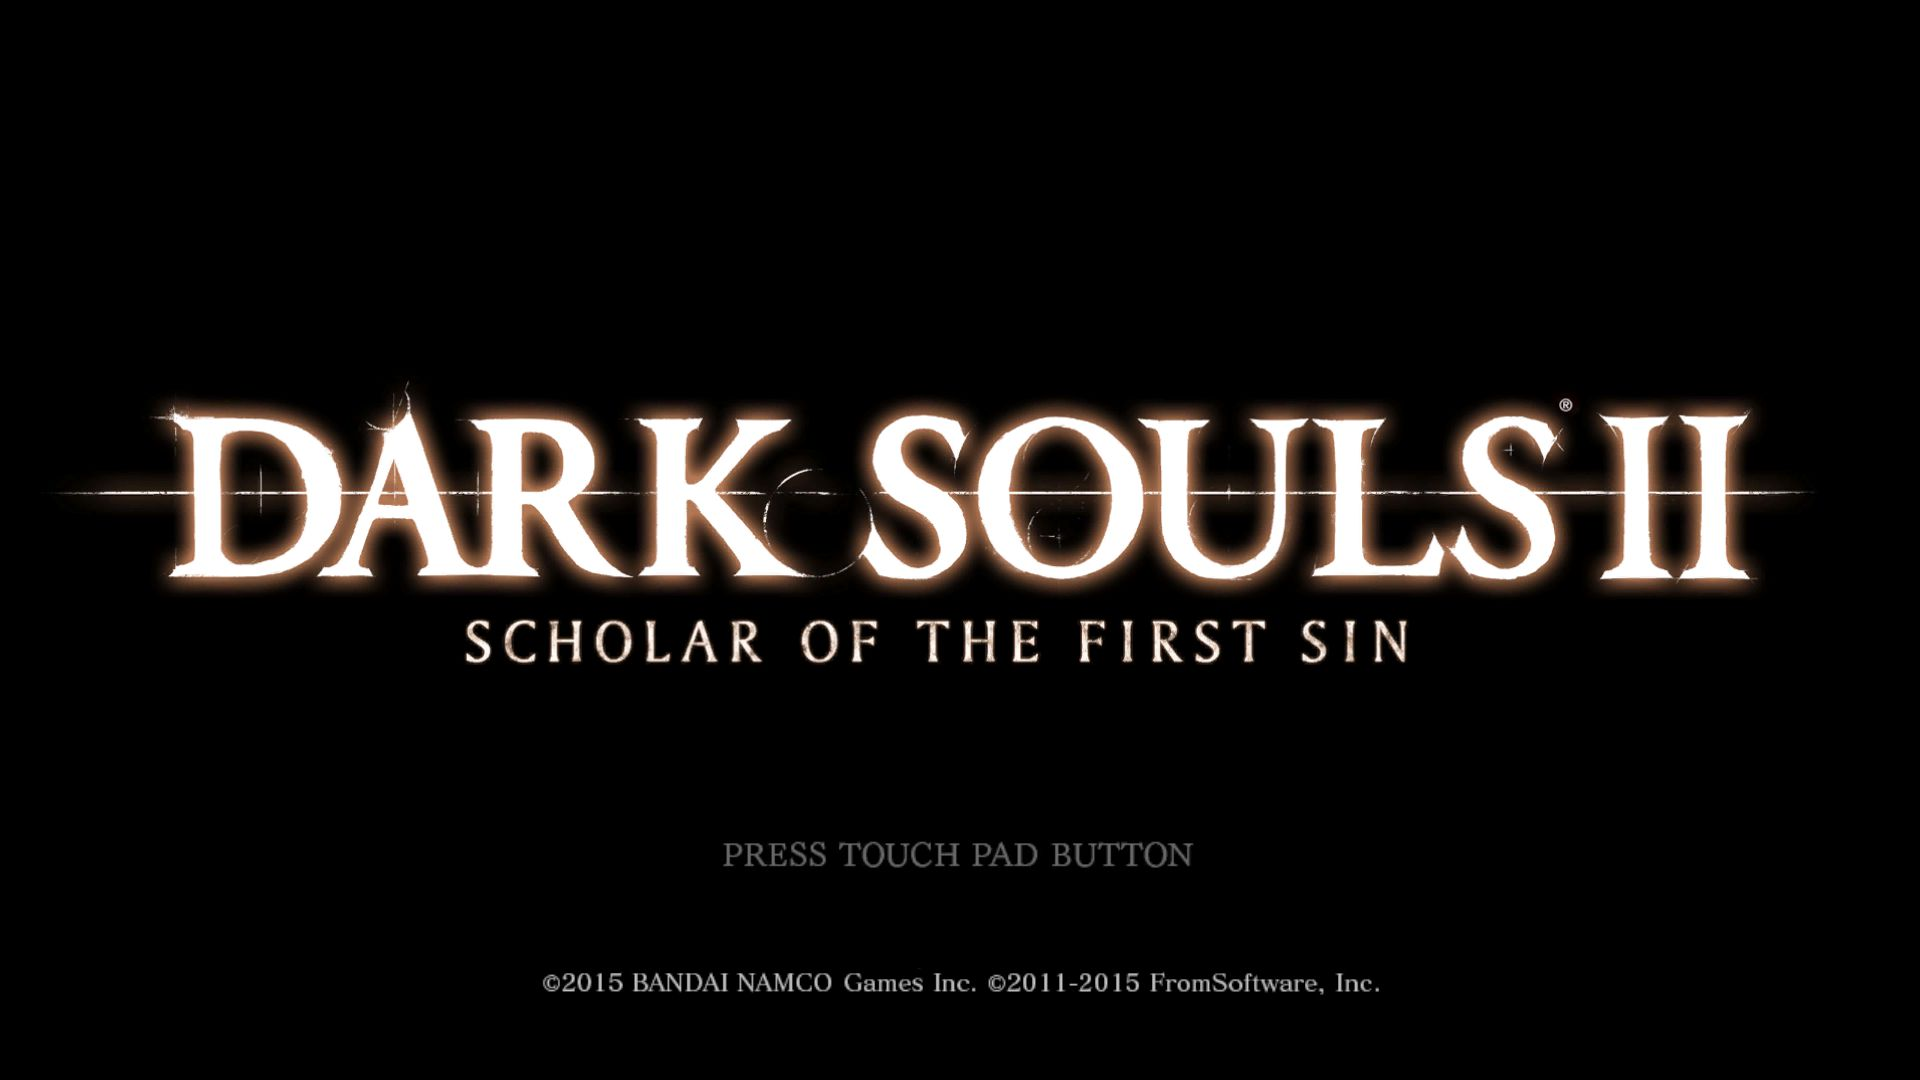 DARK SOULS Ⅱ SCHOLAR OF THE FIRST SIN Vol.16